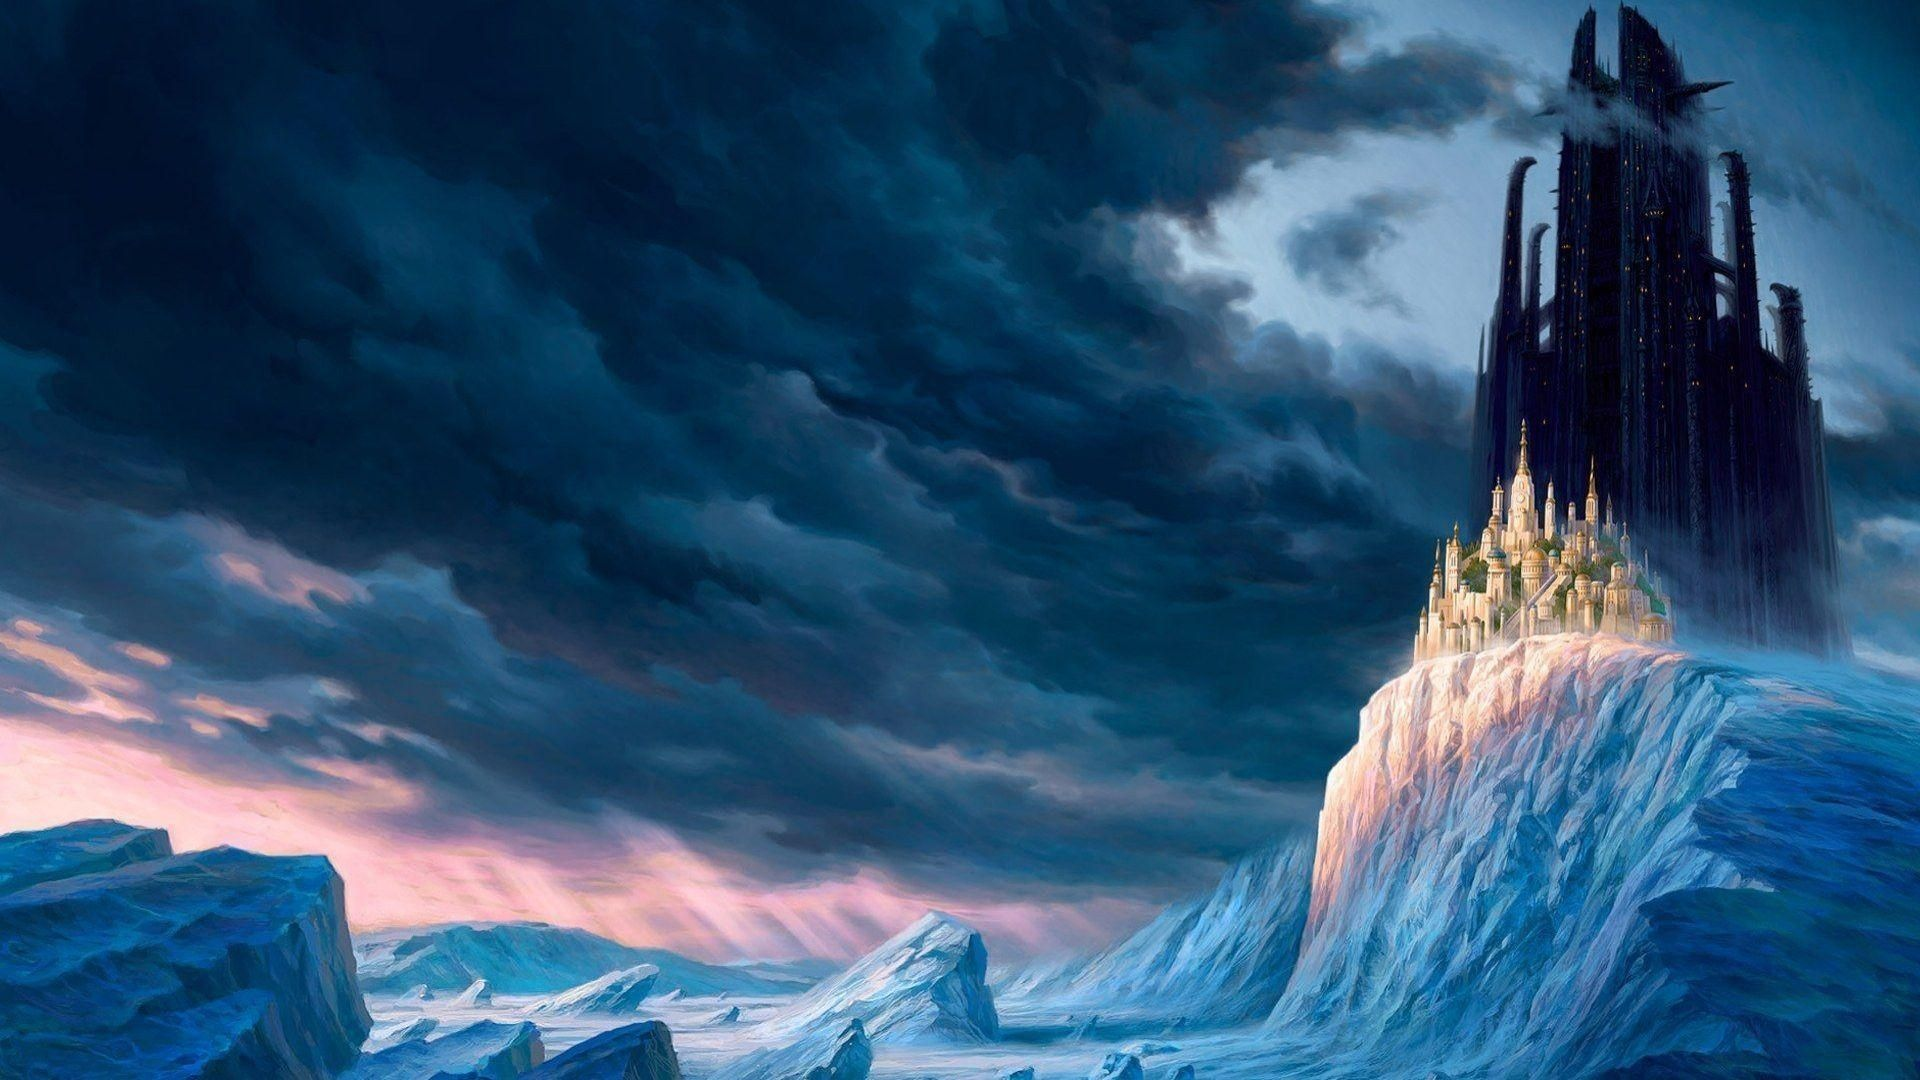 Pin by Khalilahmadkhan on Fantasy Full HD Wallpapers Free